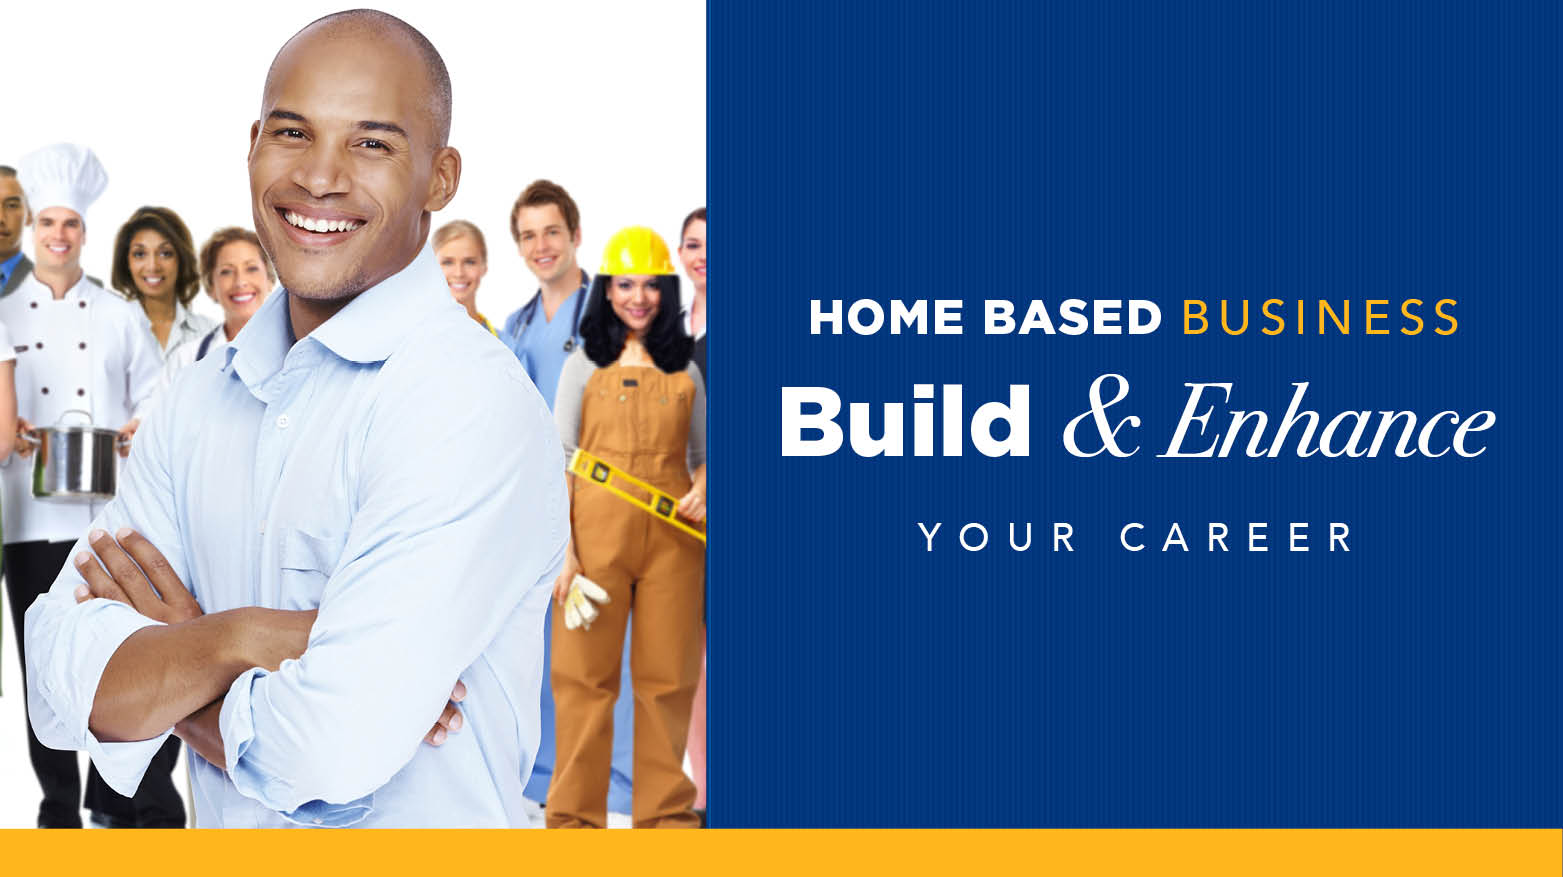 Fort Carson Home Based Business